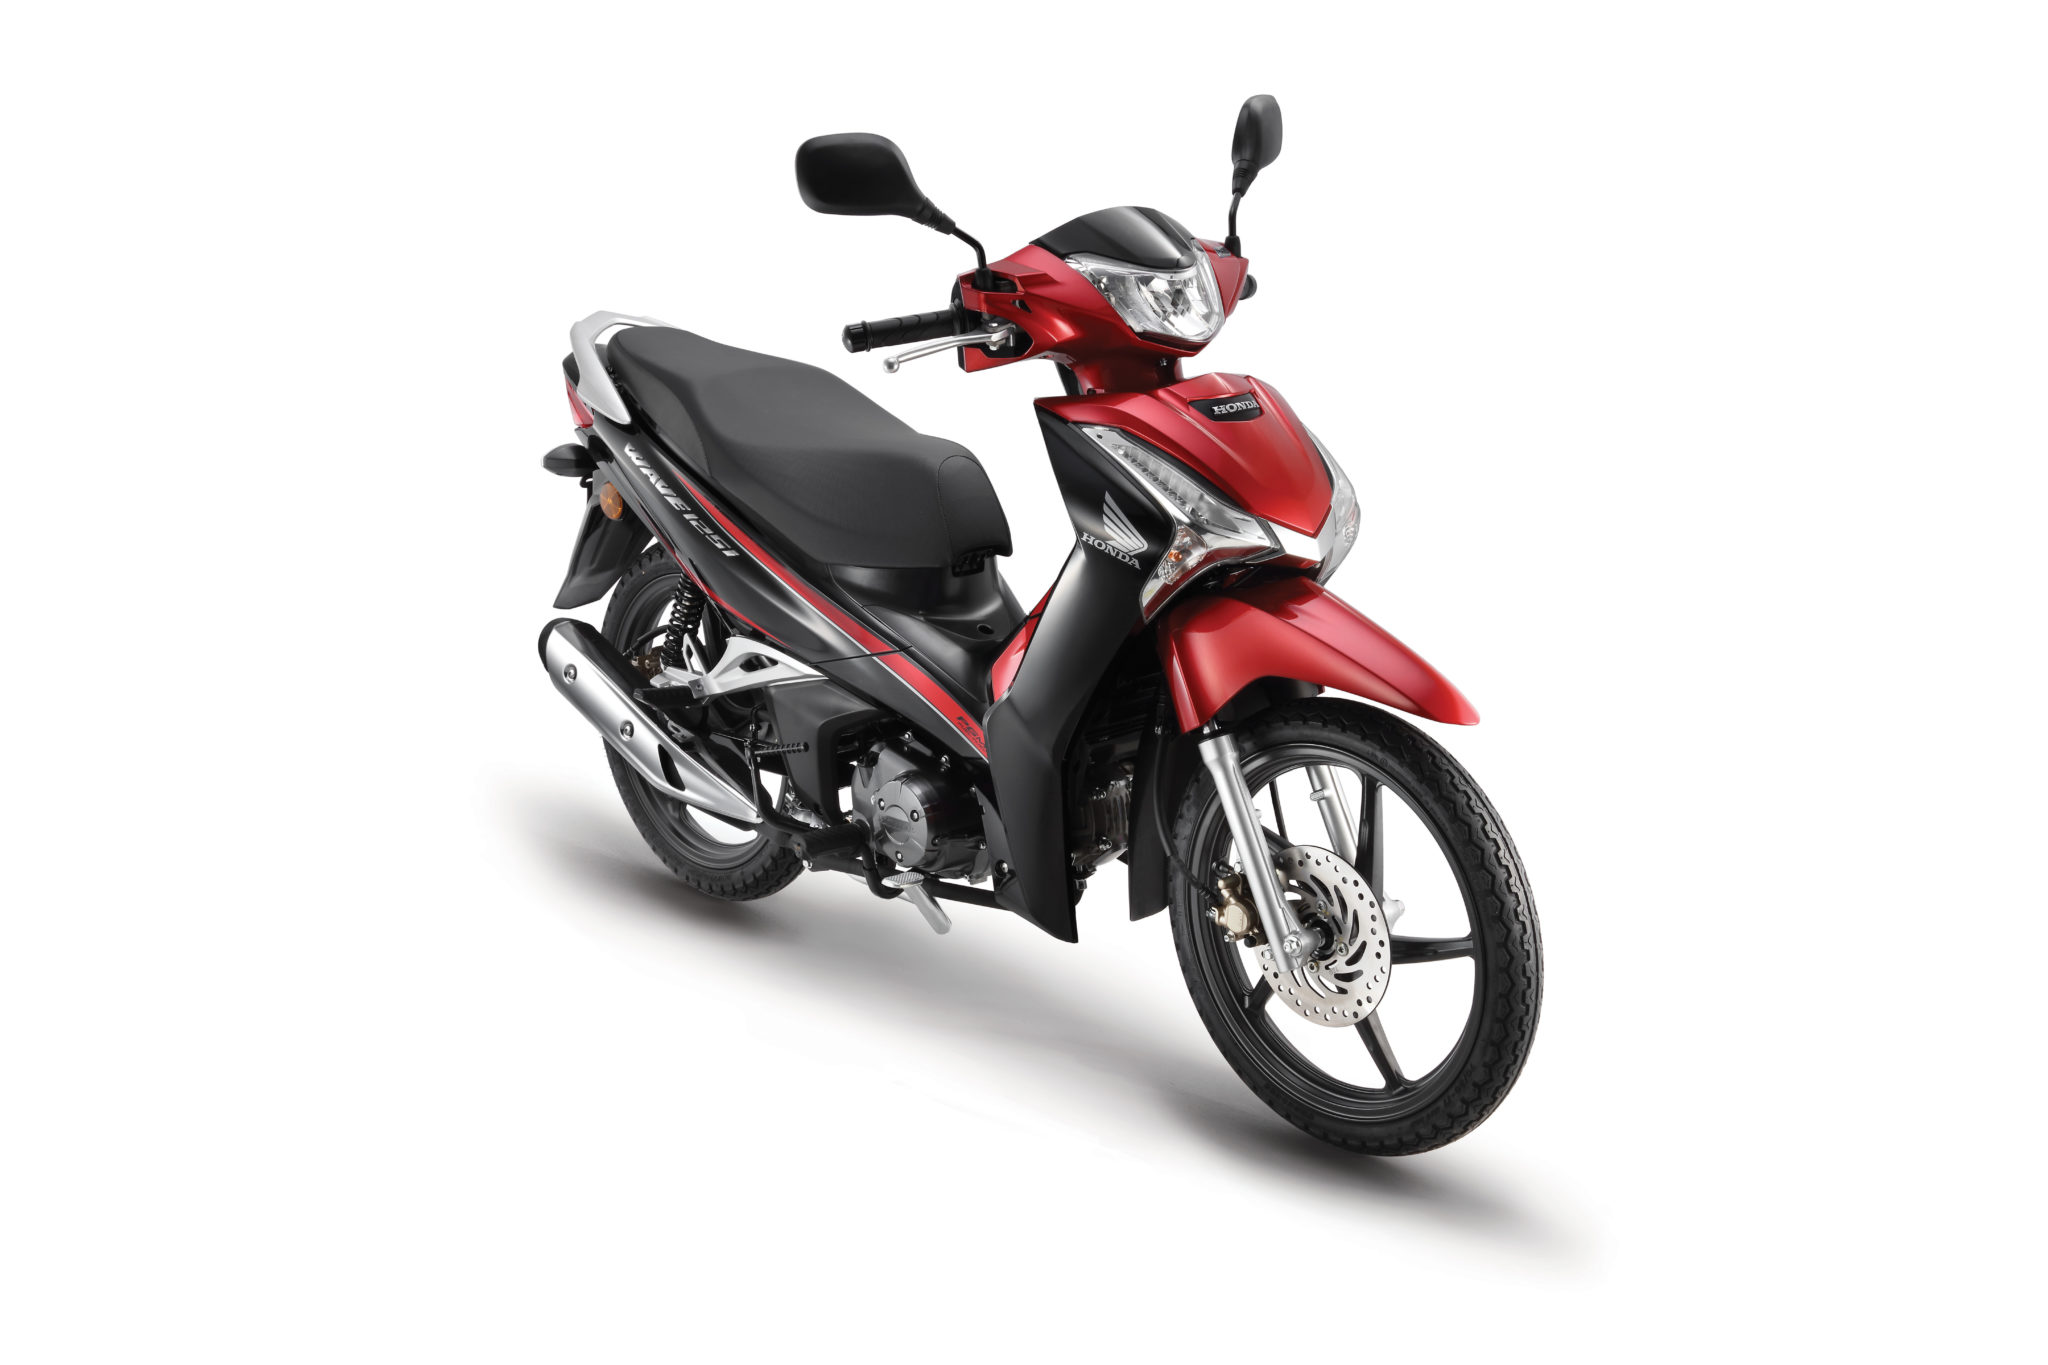 New Wave 125i introduced by Boon Siew Honda